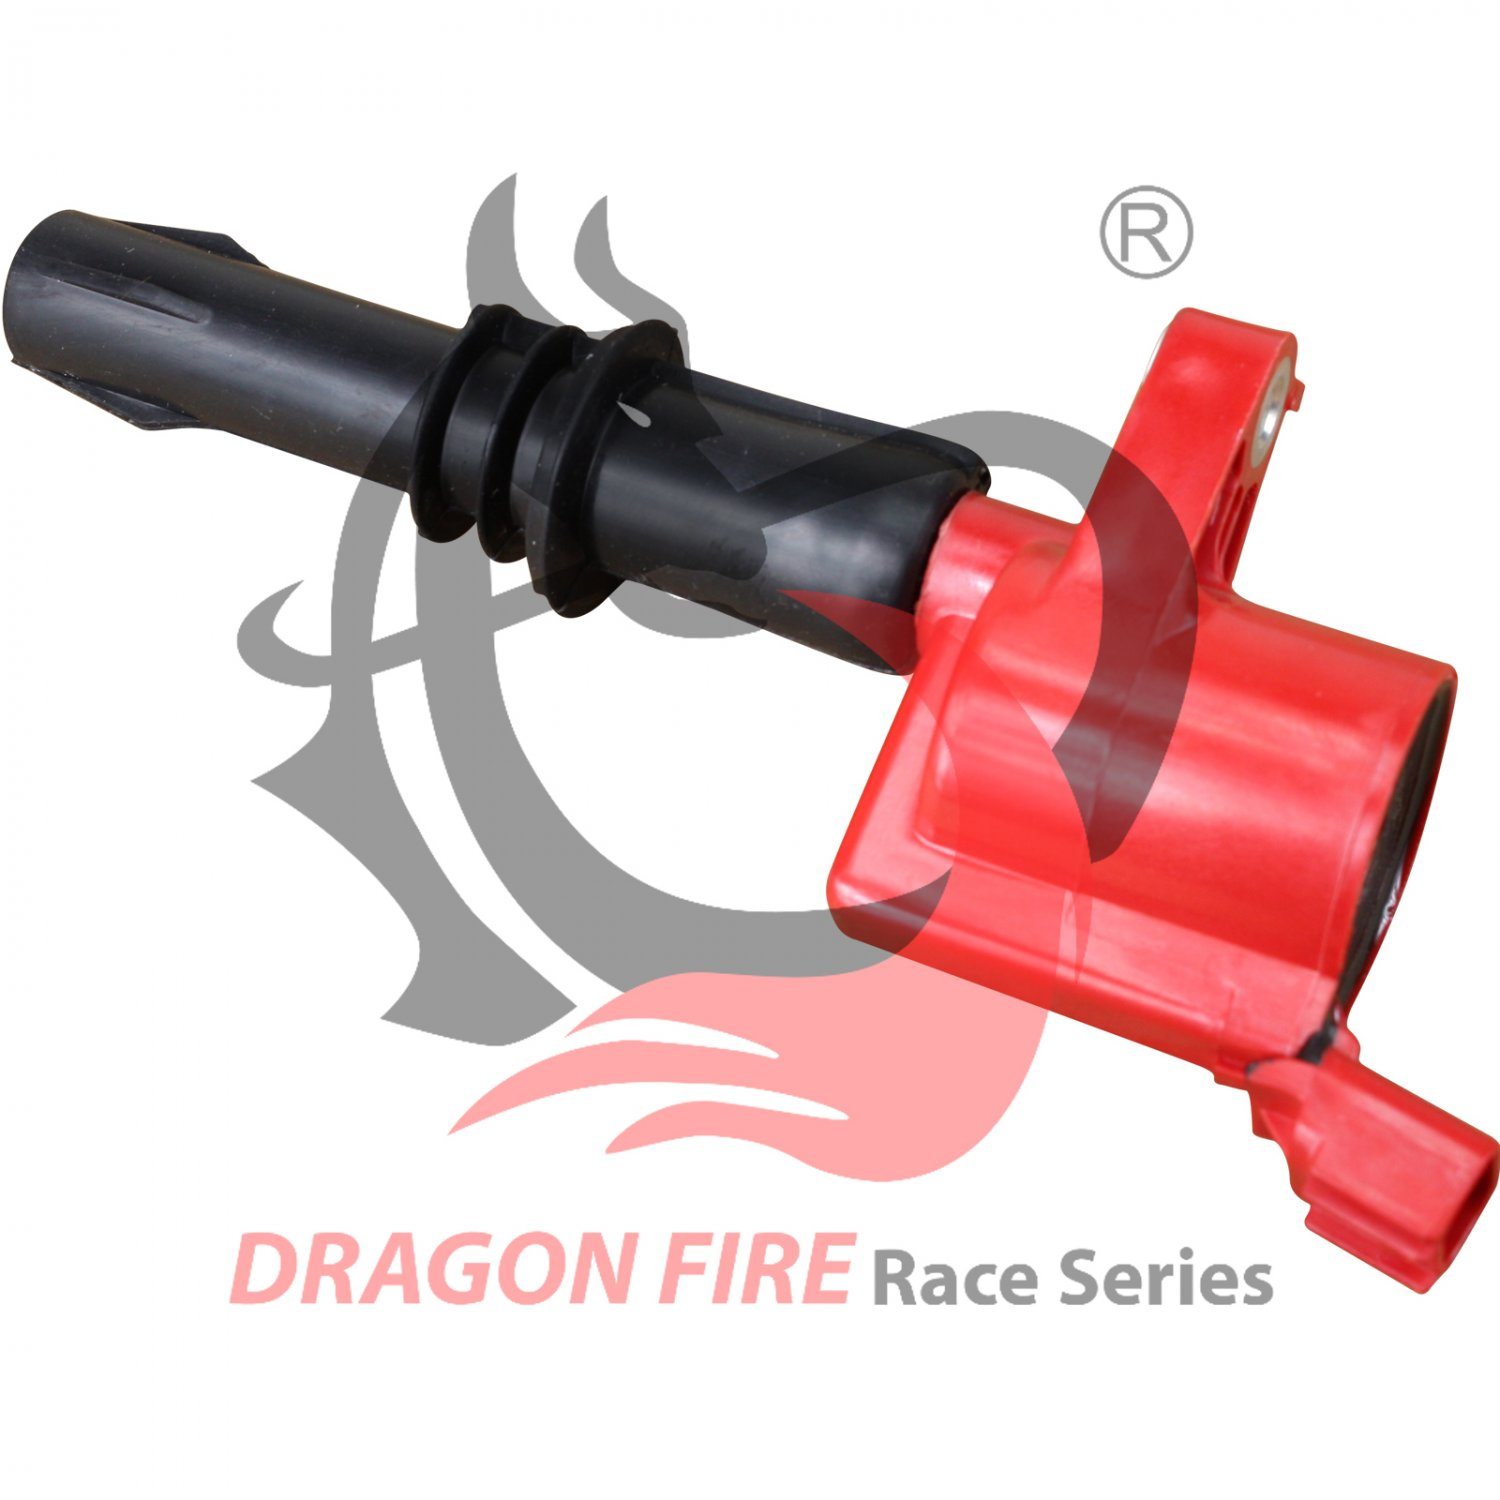 Set of 8 Brand New High Performance Dragonfire Ignition Coil Packs / Pencil / Coil on Plug Complete